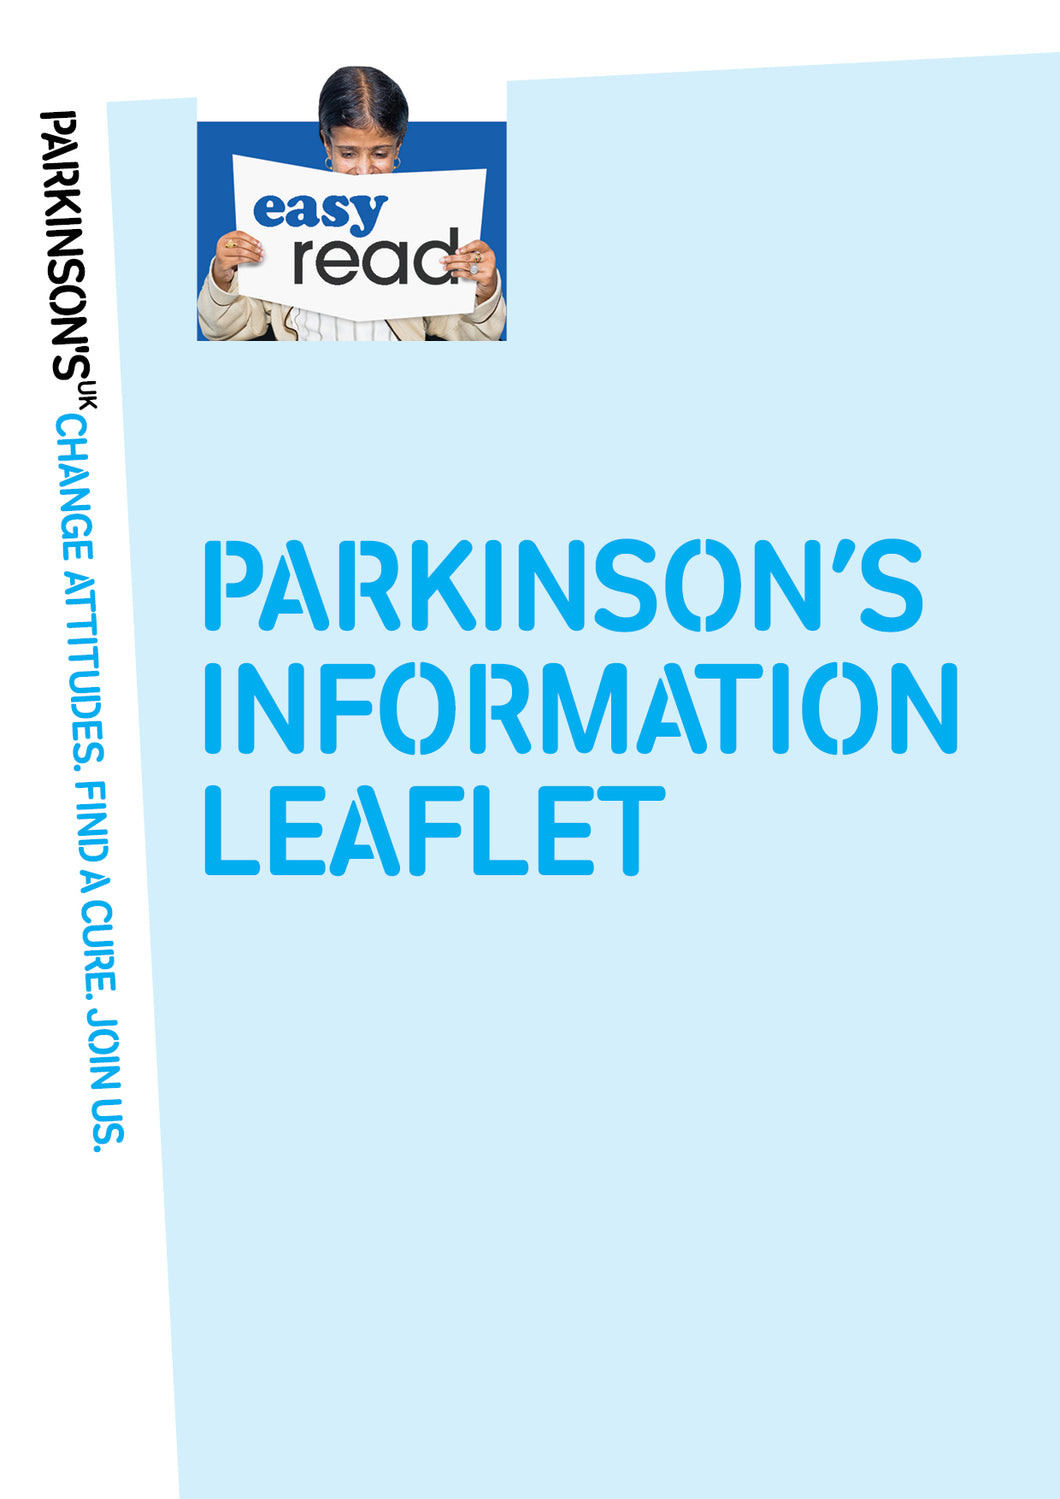 Easy read information about Parkinson's - Parkinson's shop